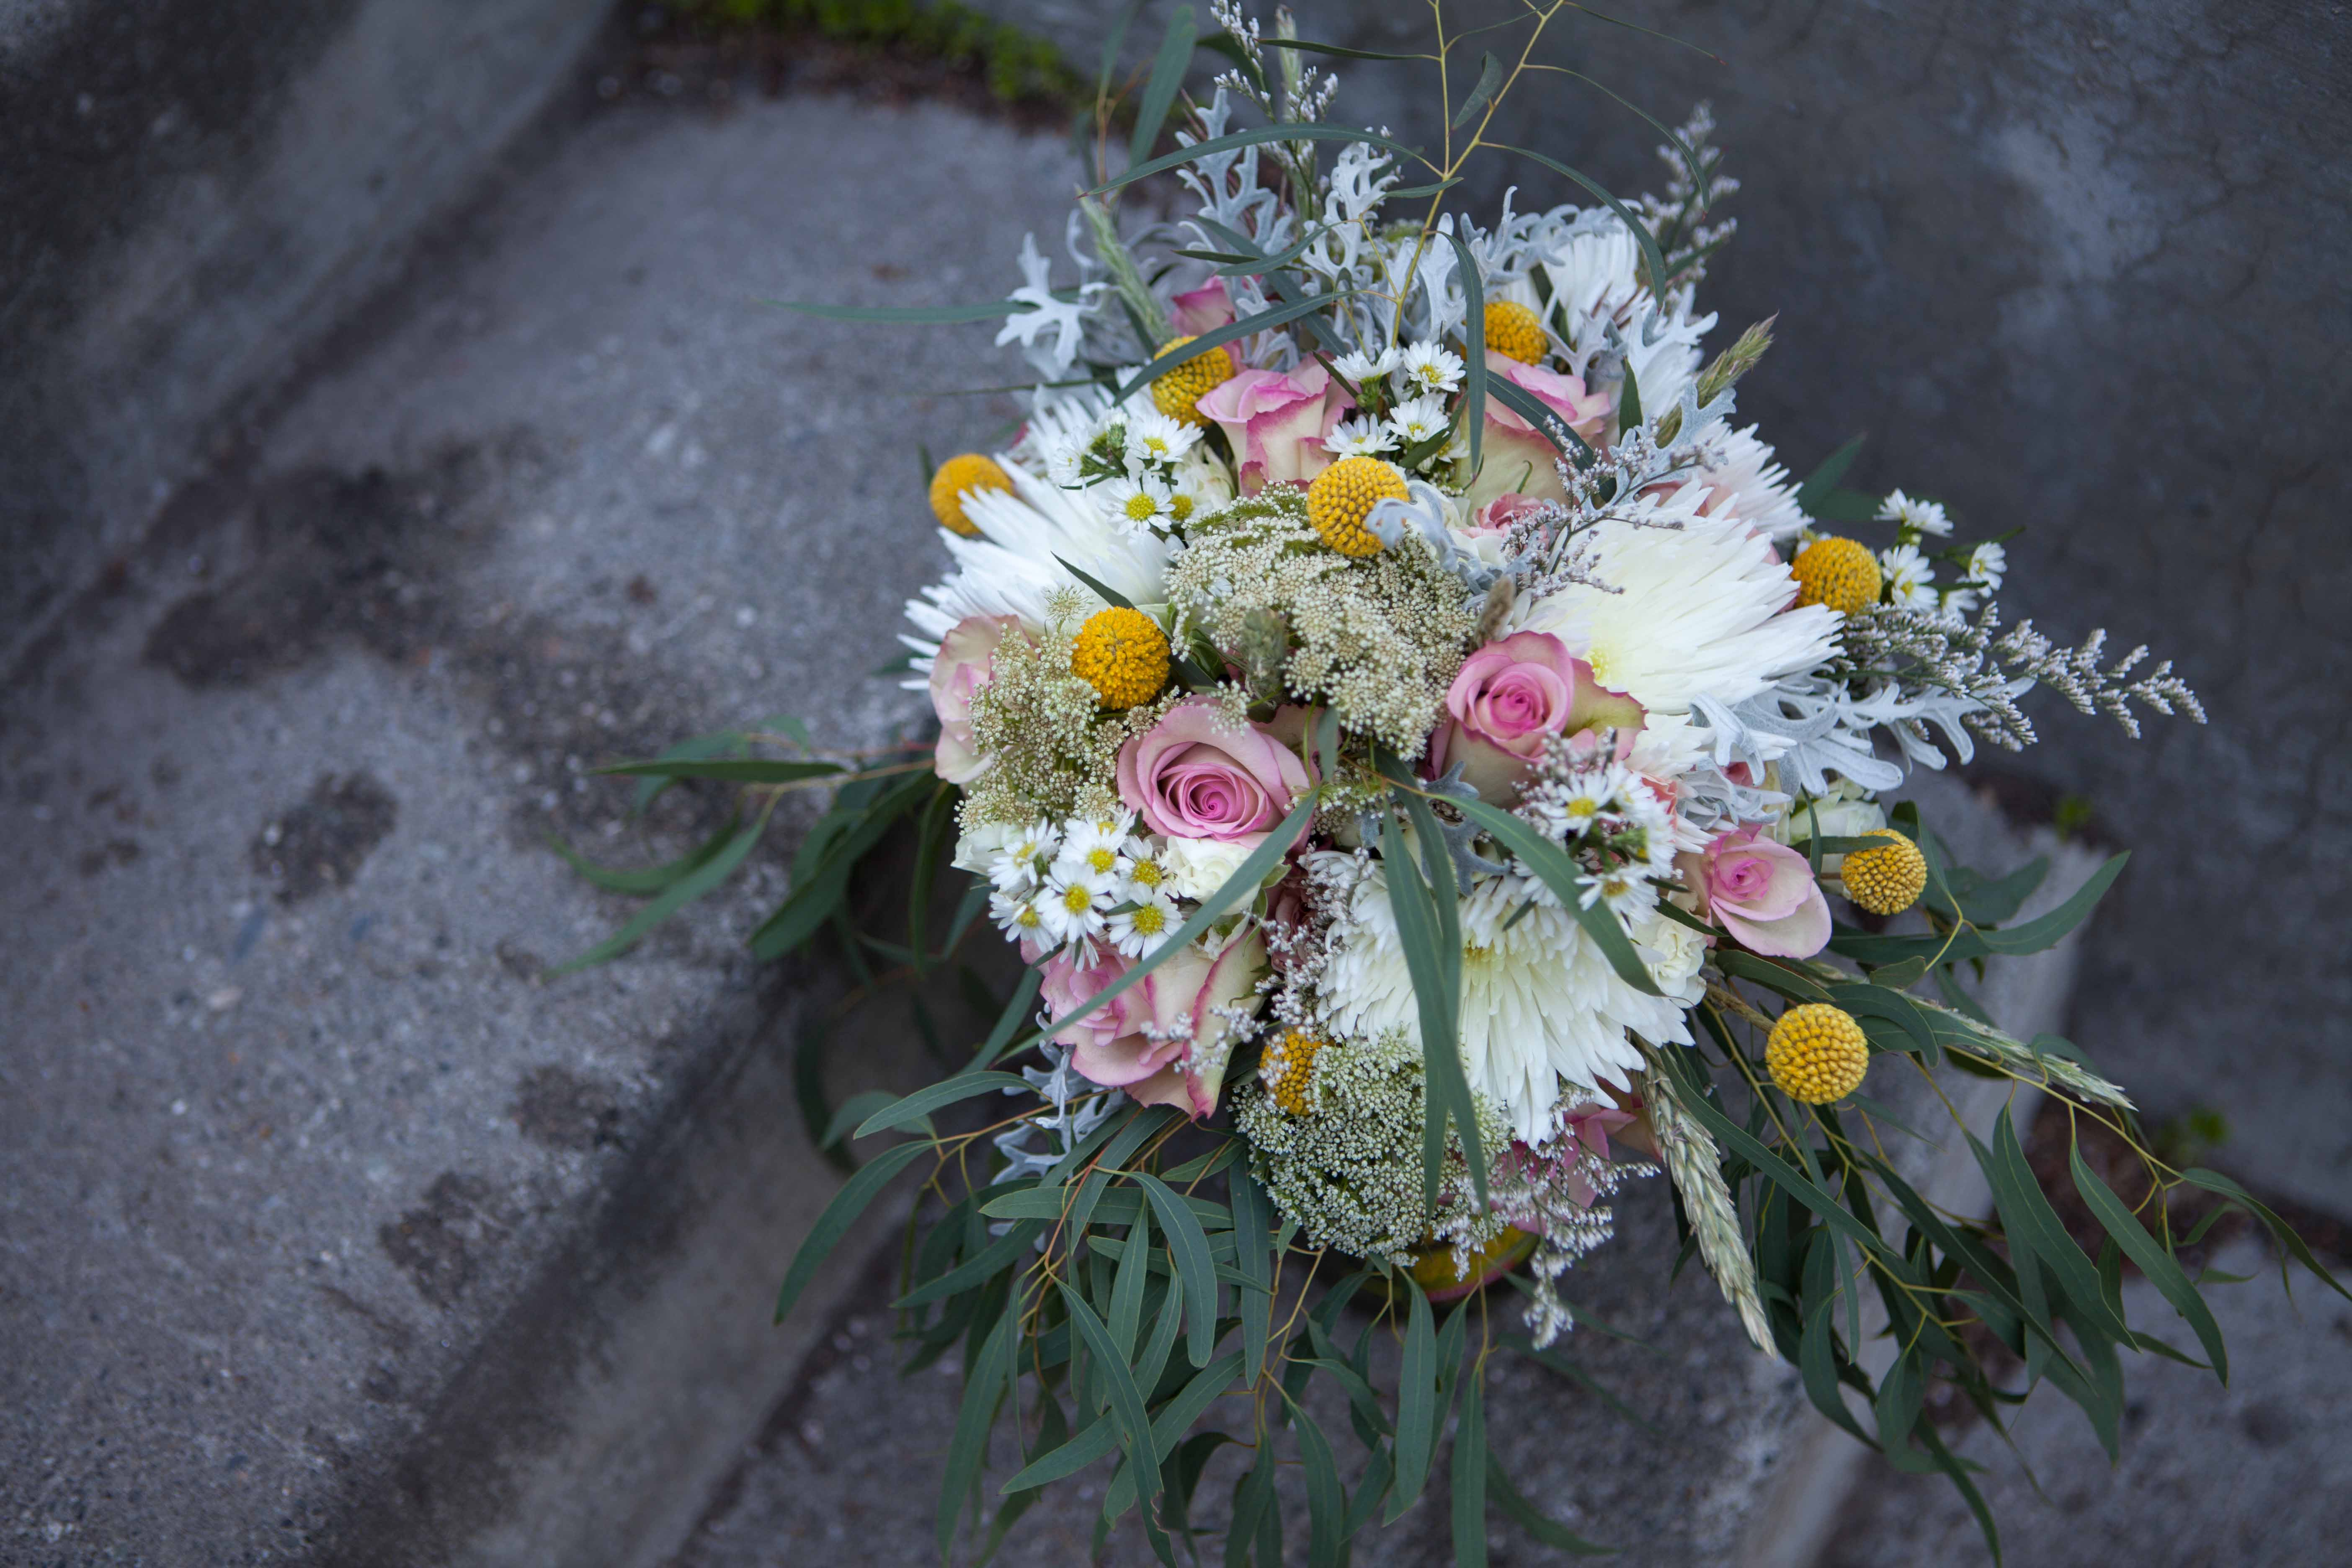 Wild bridal bouquet with roses, fuji mums, Queen Anne's Lace and billy balls | designed by Natasha Price of Paper Peony Alaska